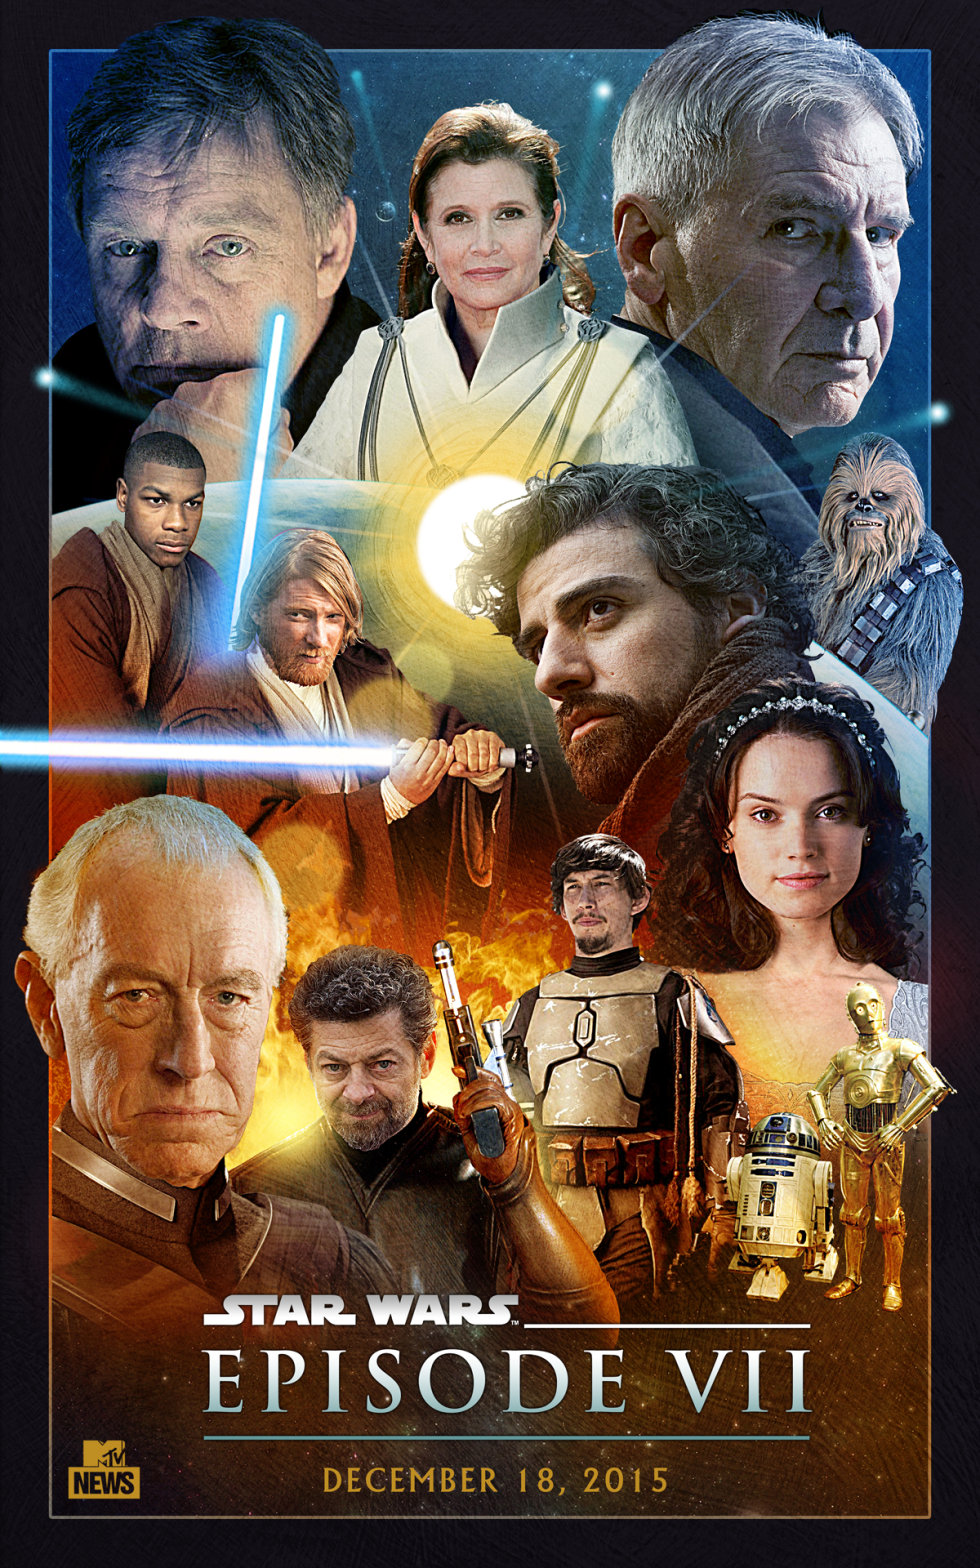 fan-made-star-wars-episode-vii-poster-with-new-cast